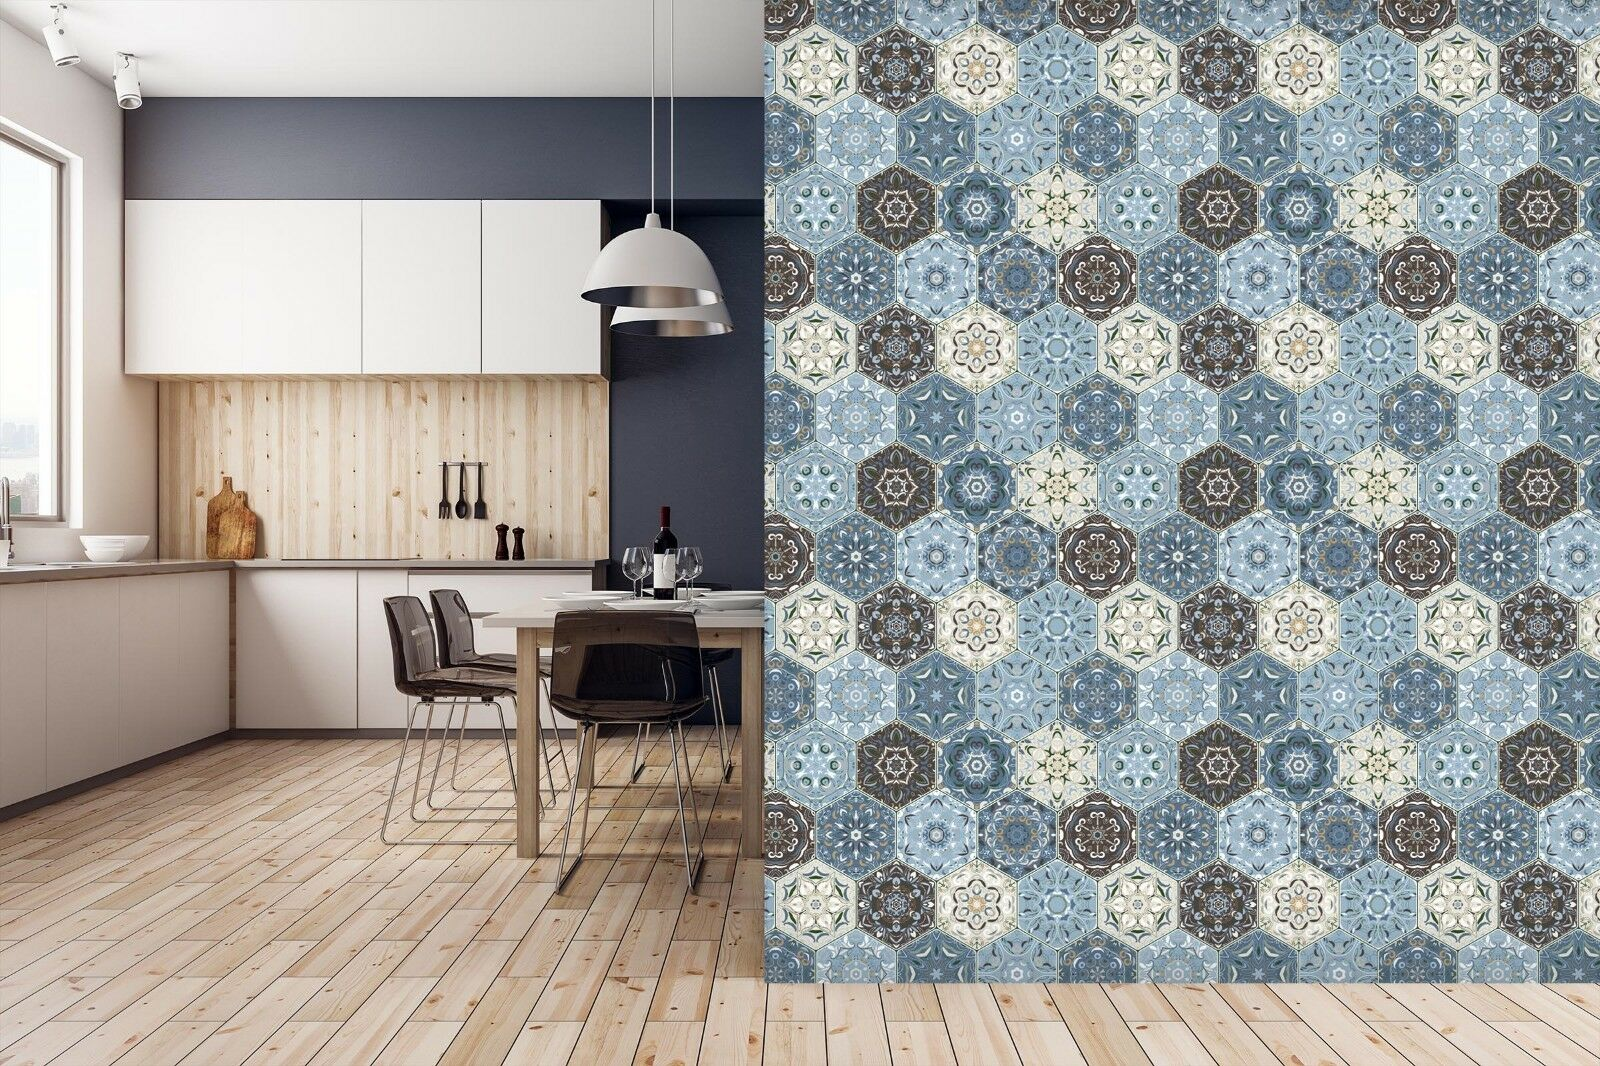 3D Cute Blau Flower 921 Texture Tiles Marble Wall Paper Decal Wallpaper Mural AJ